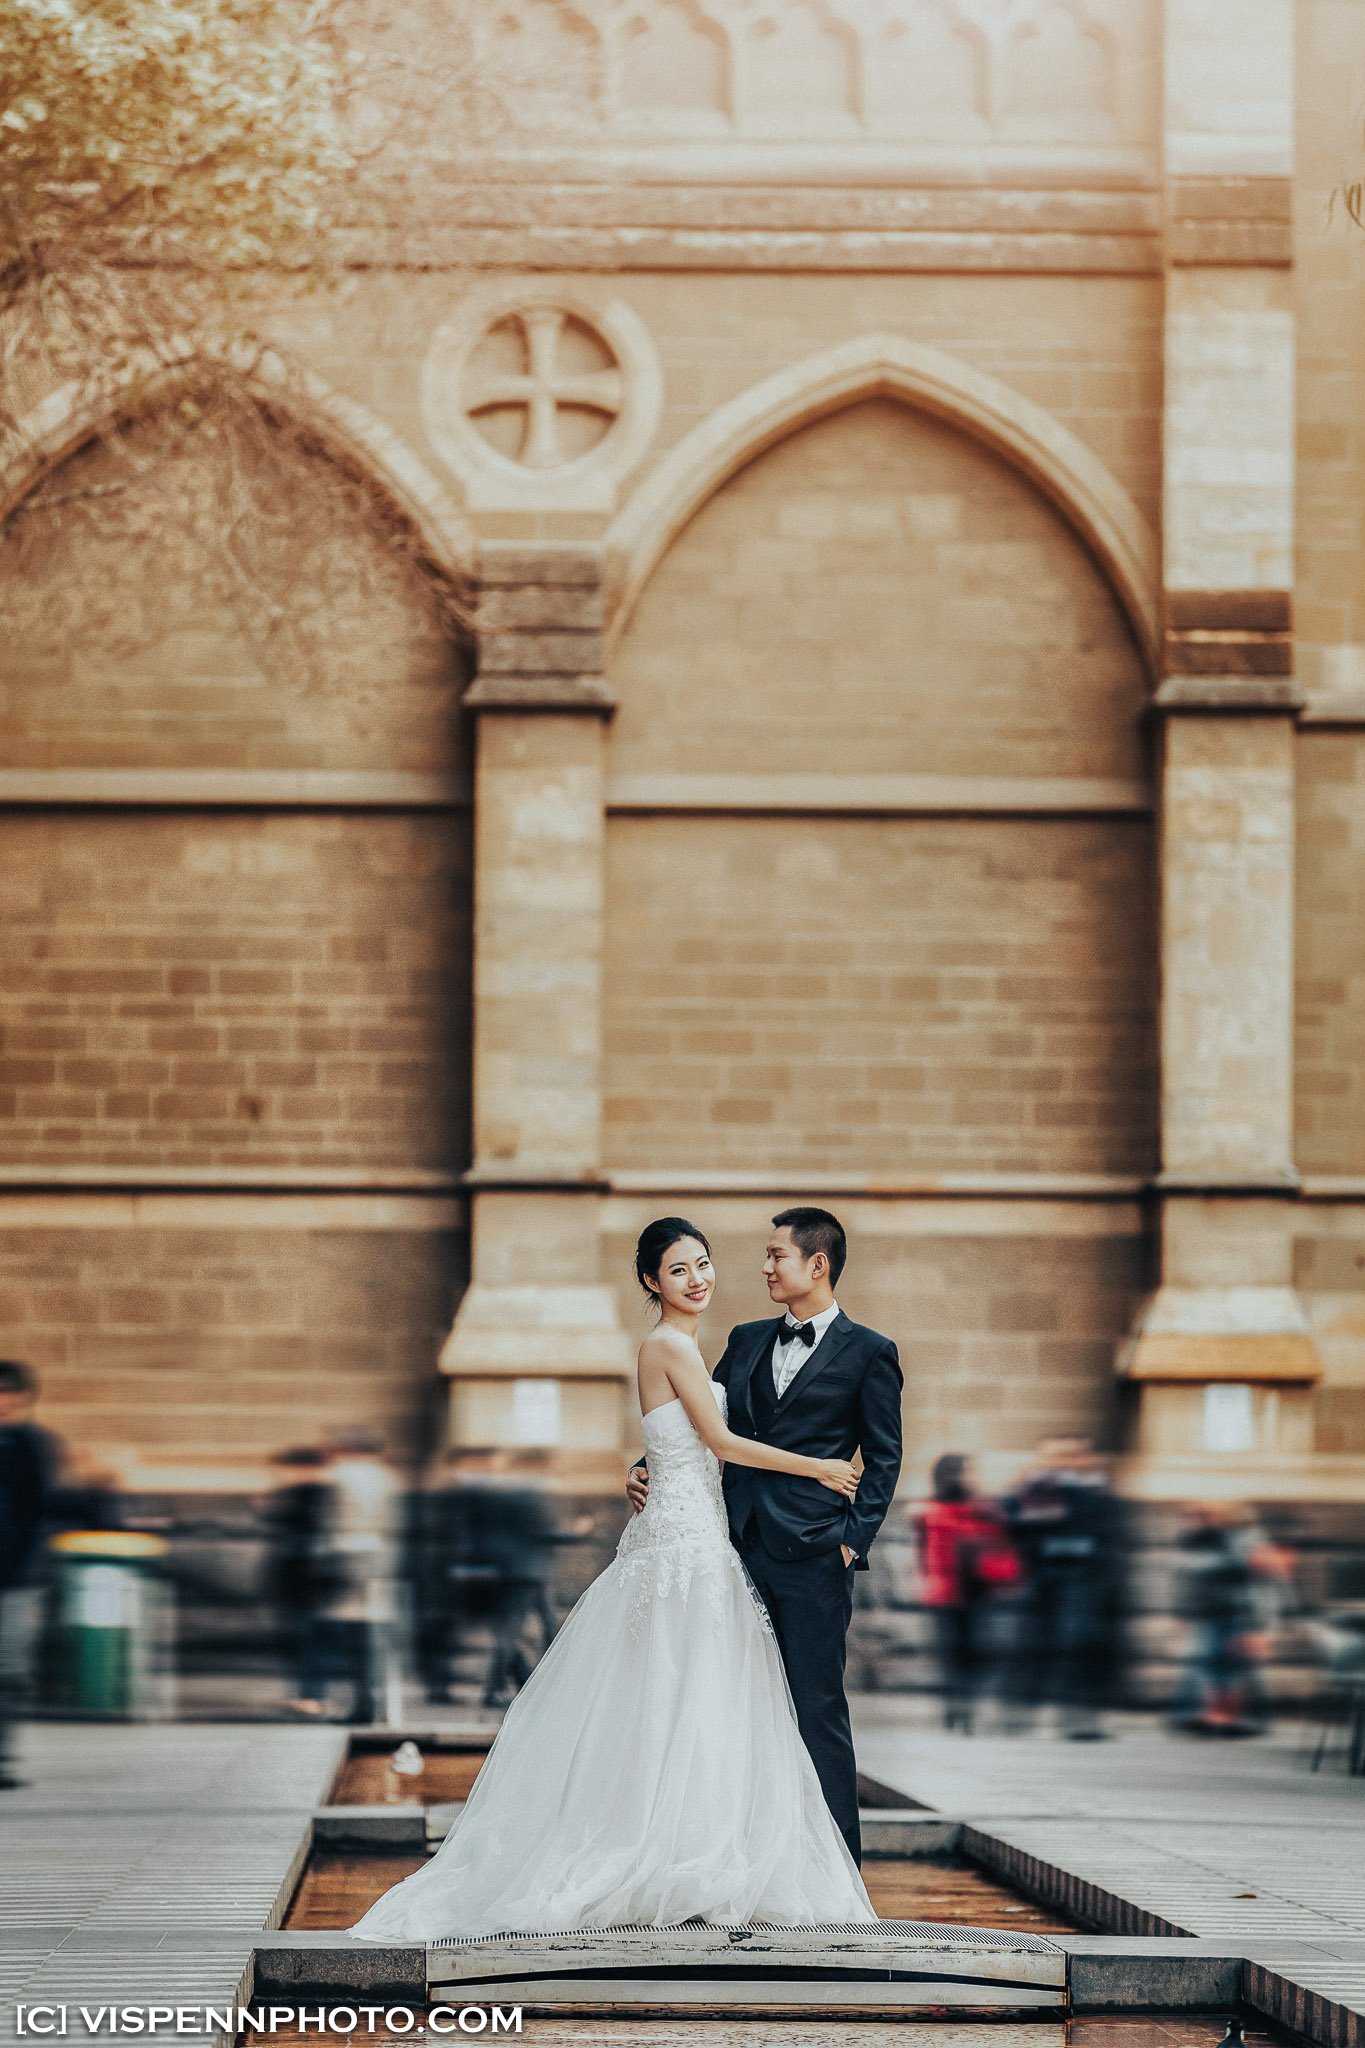 PRE WEDDING Photography Melbourne Stella PreWedding 4177 1